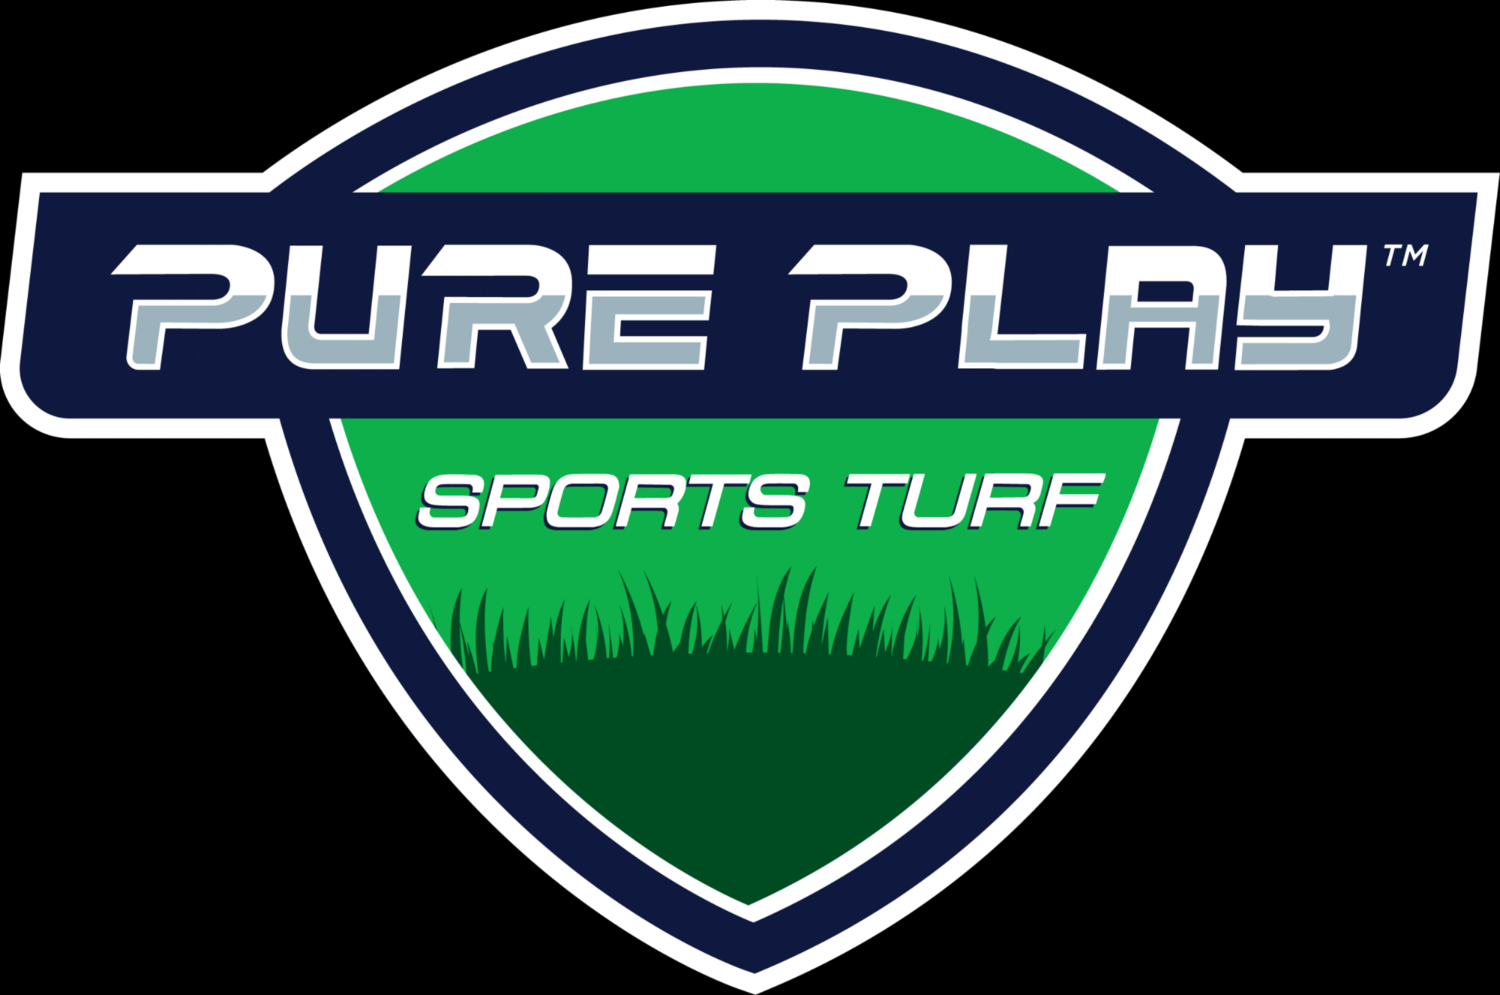 Pure-Play Sports Turf